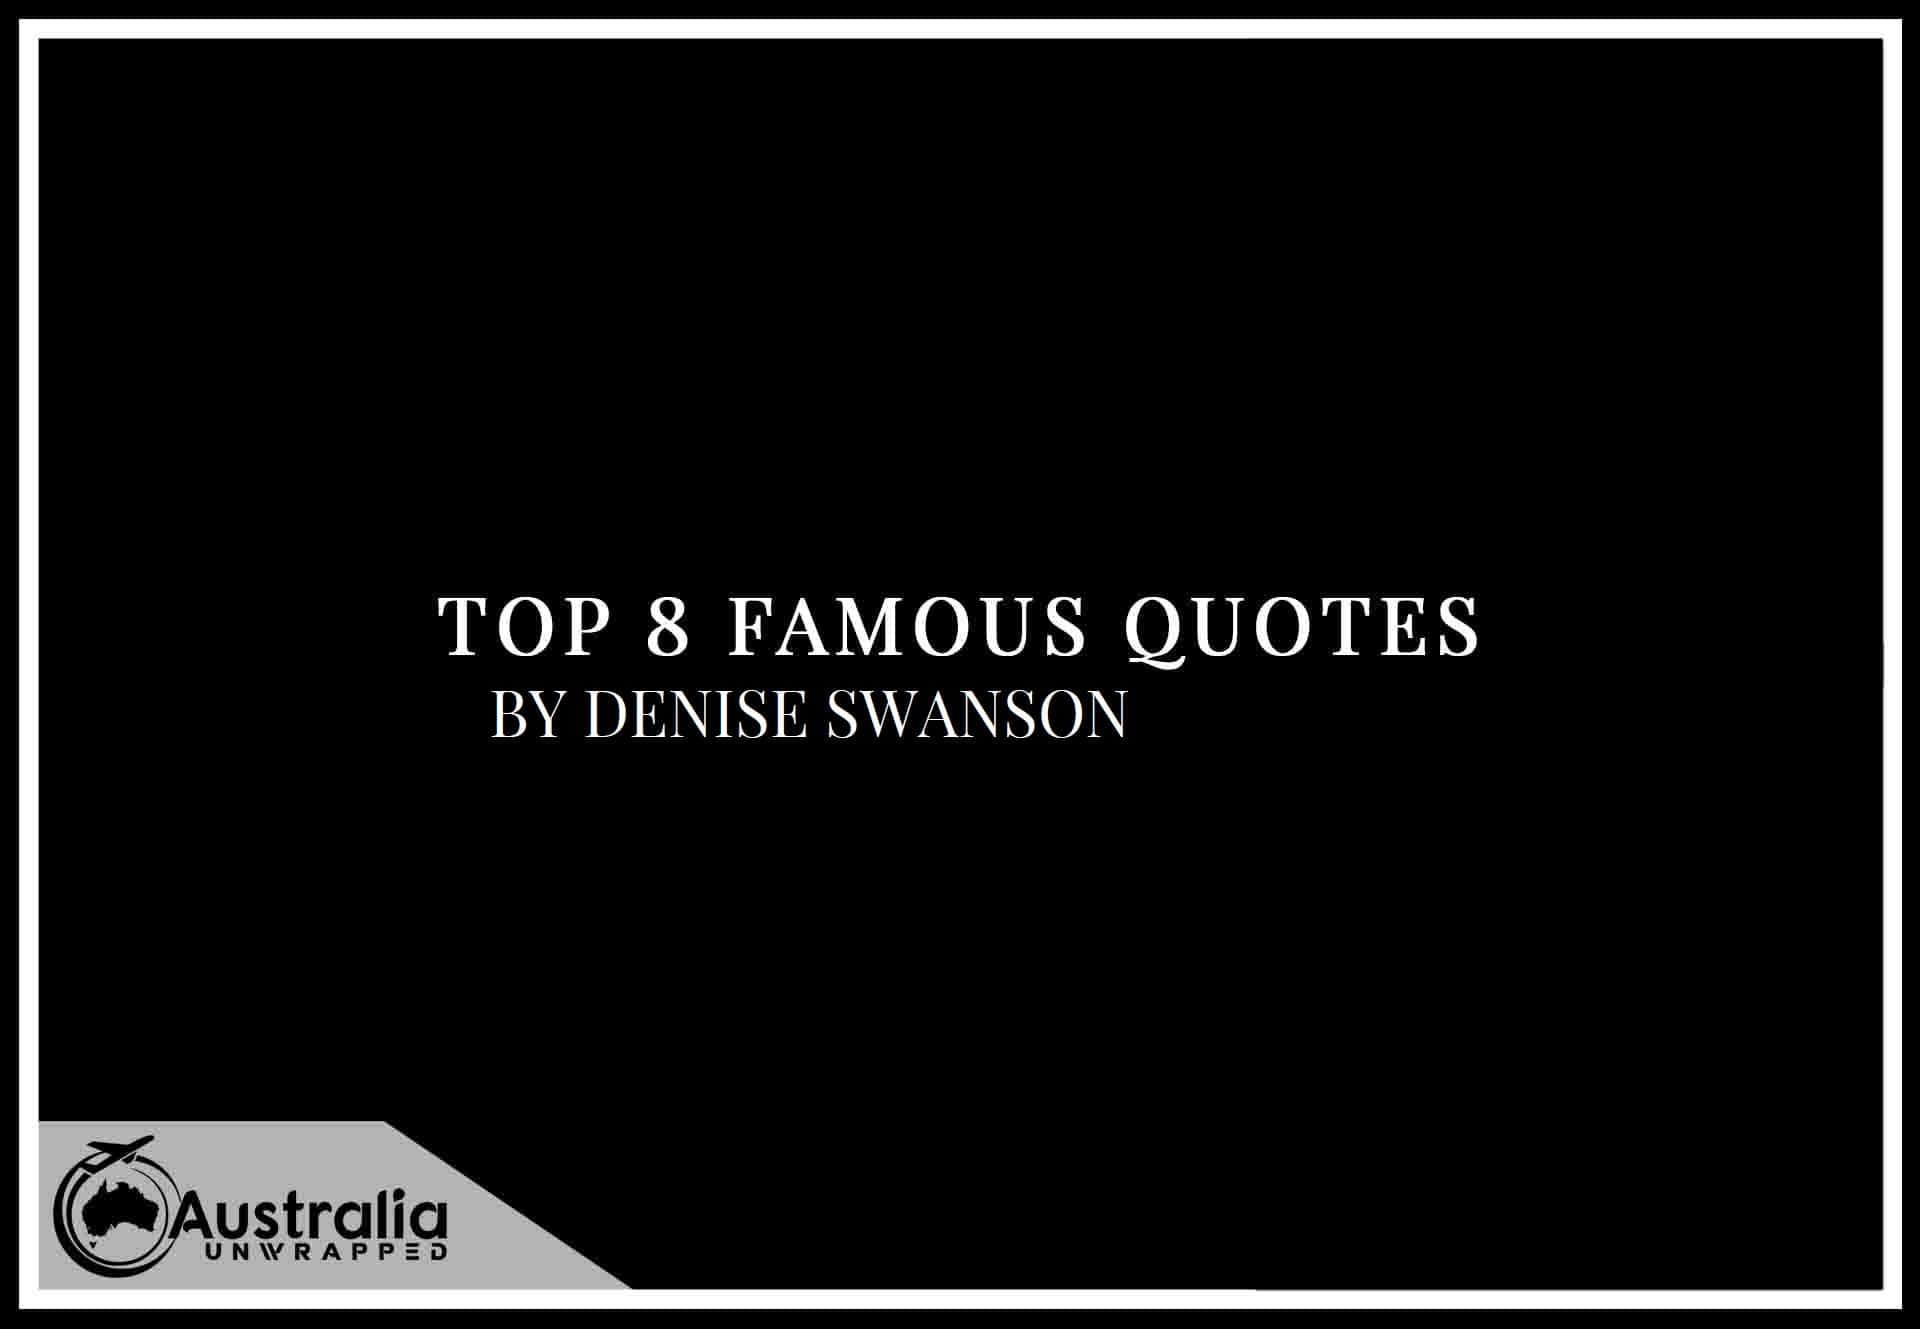 Top 8 Famous Quotes by Author Denise Swanson